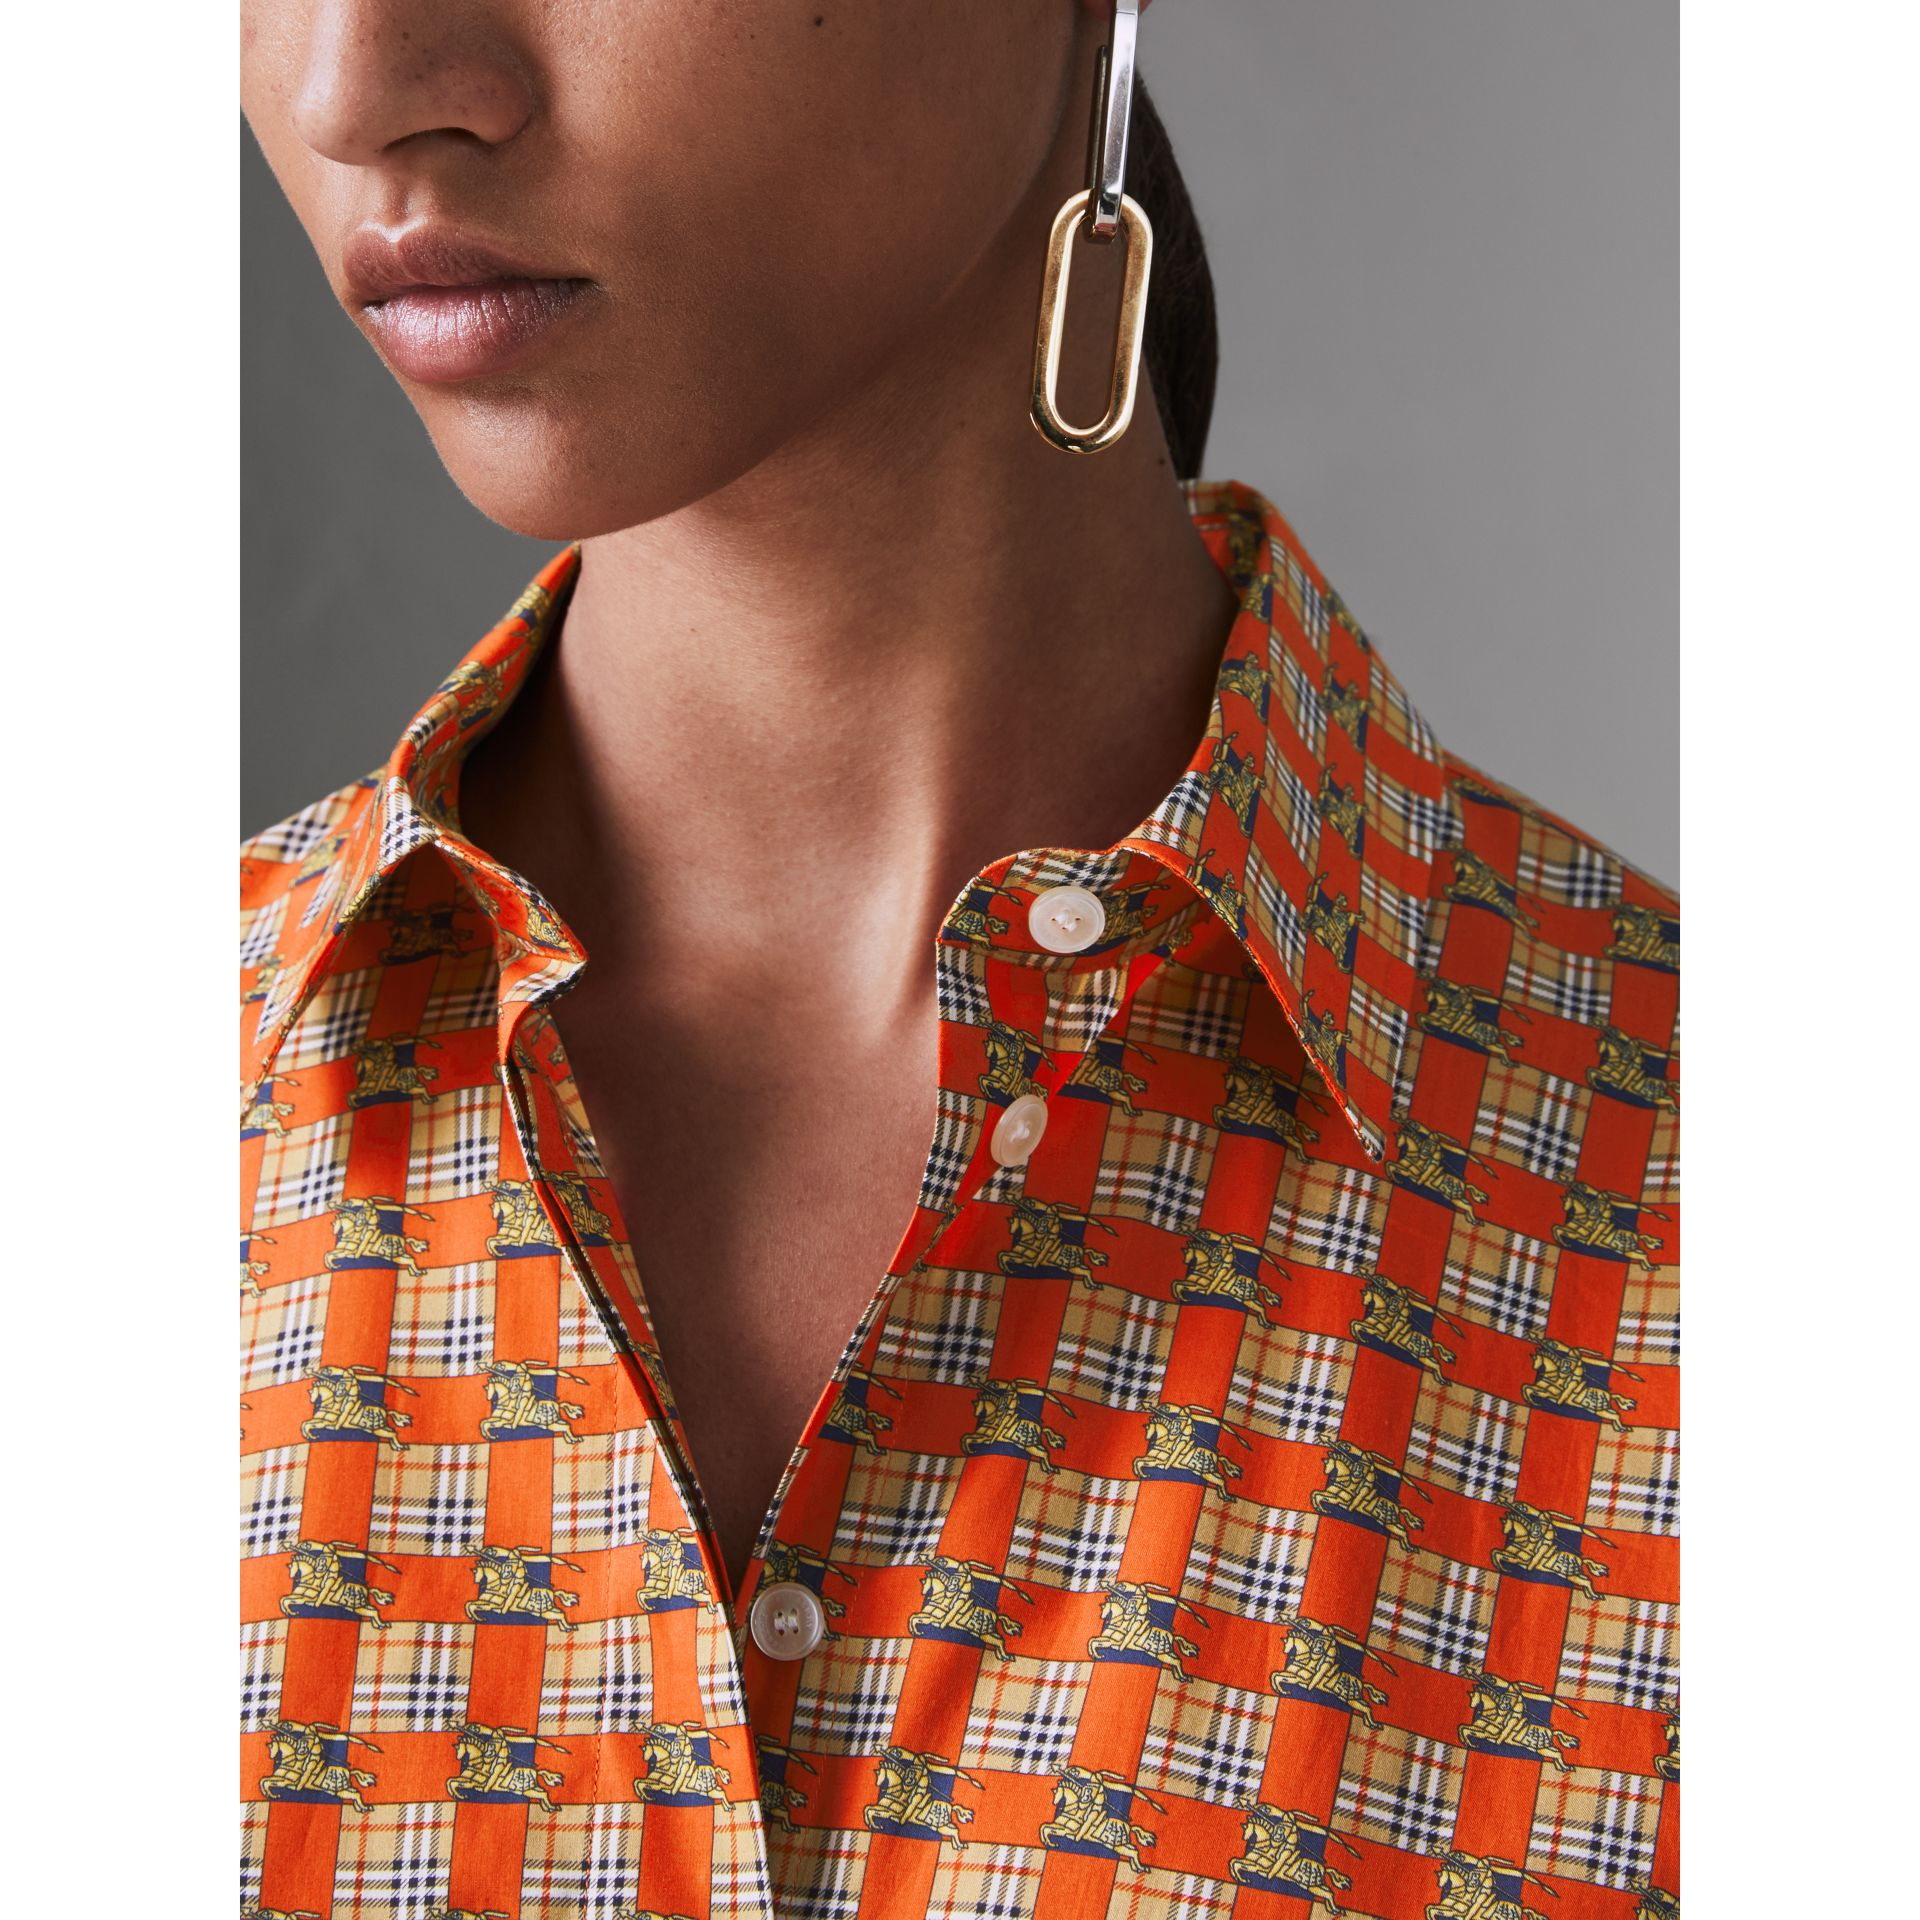 Tiled Archive Print Cotton Shirt in Bright Red - Women | Burberry Canada - gallery image 4